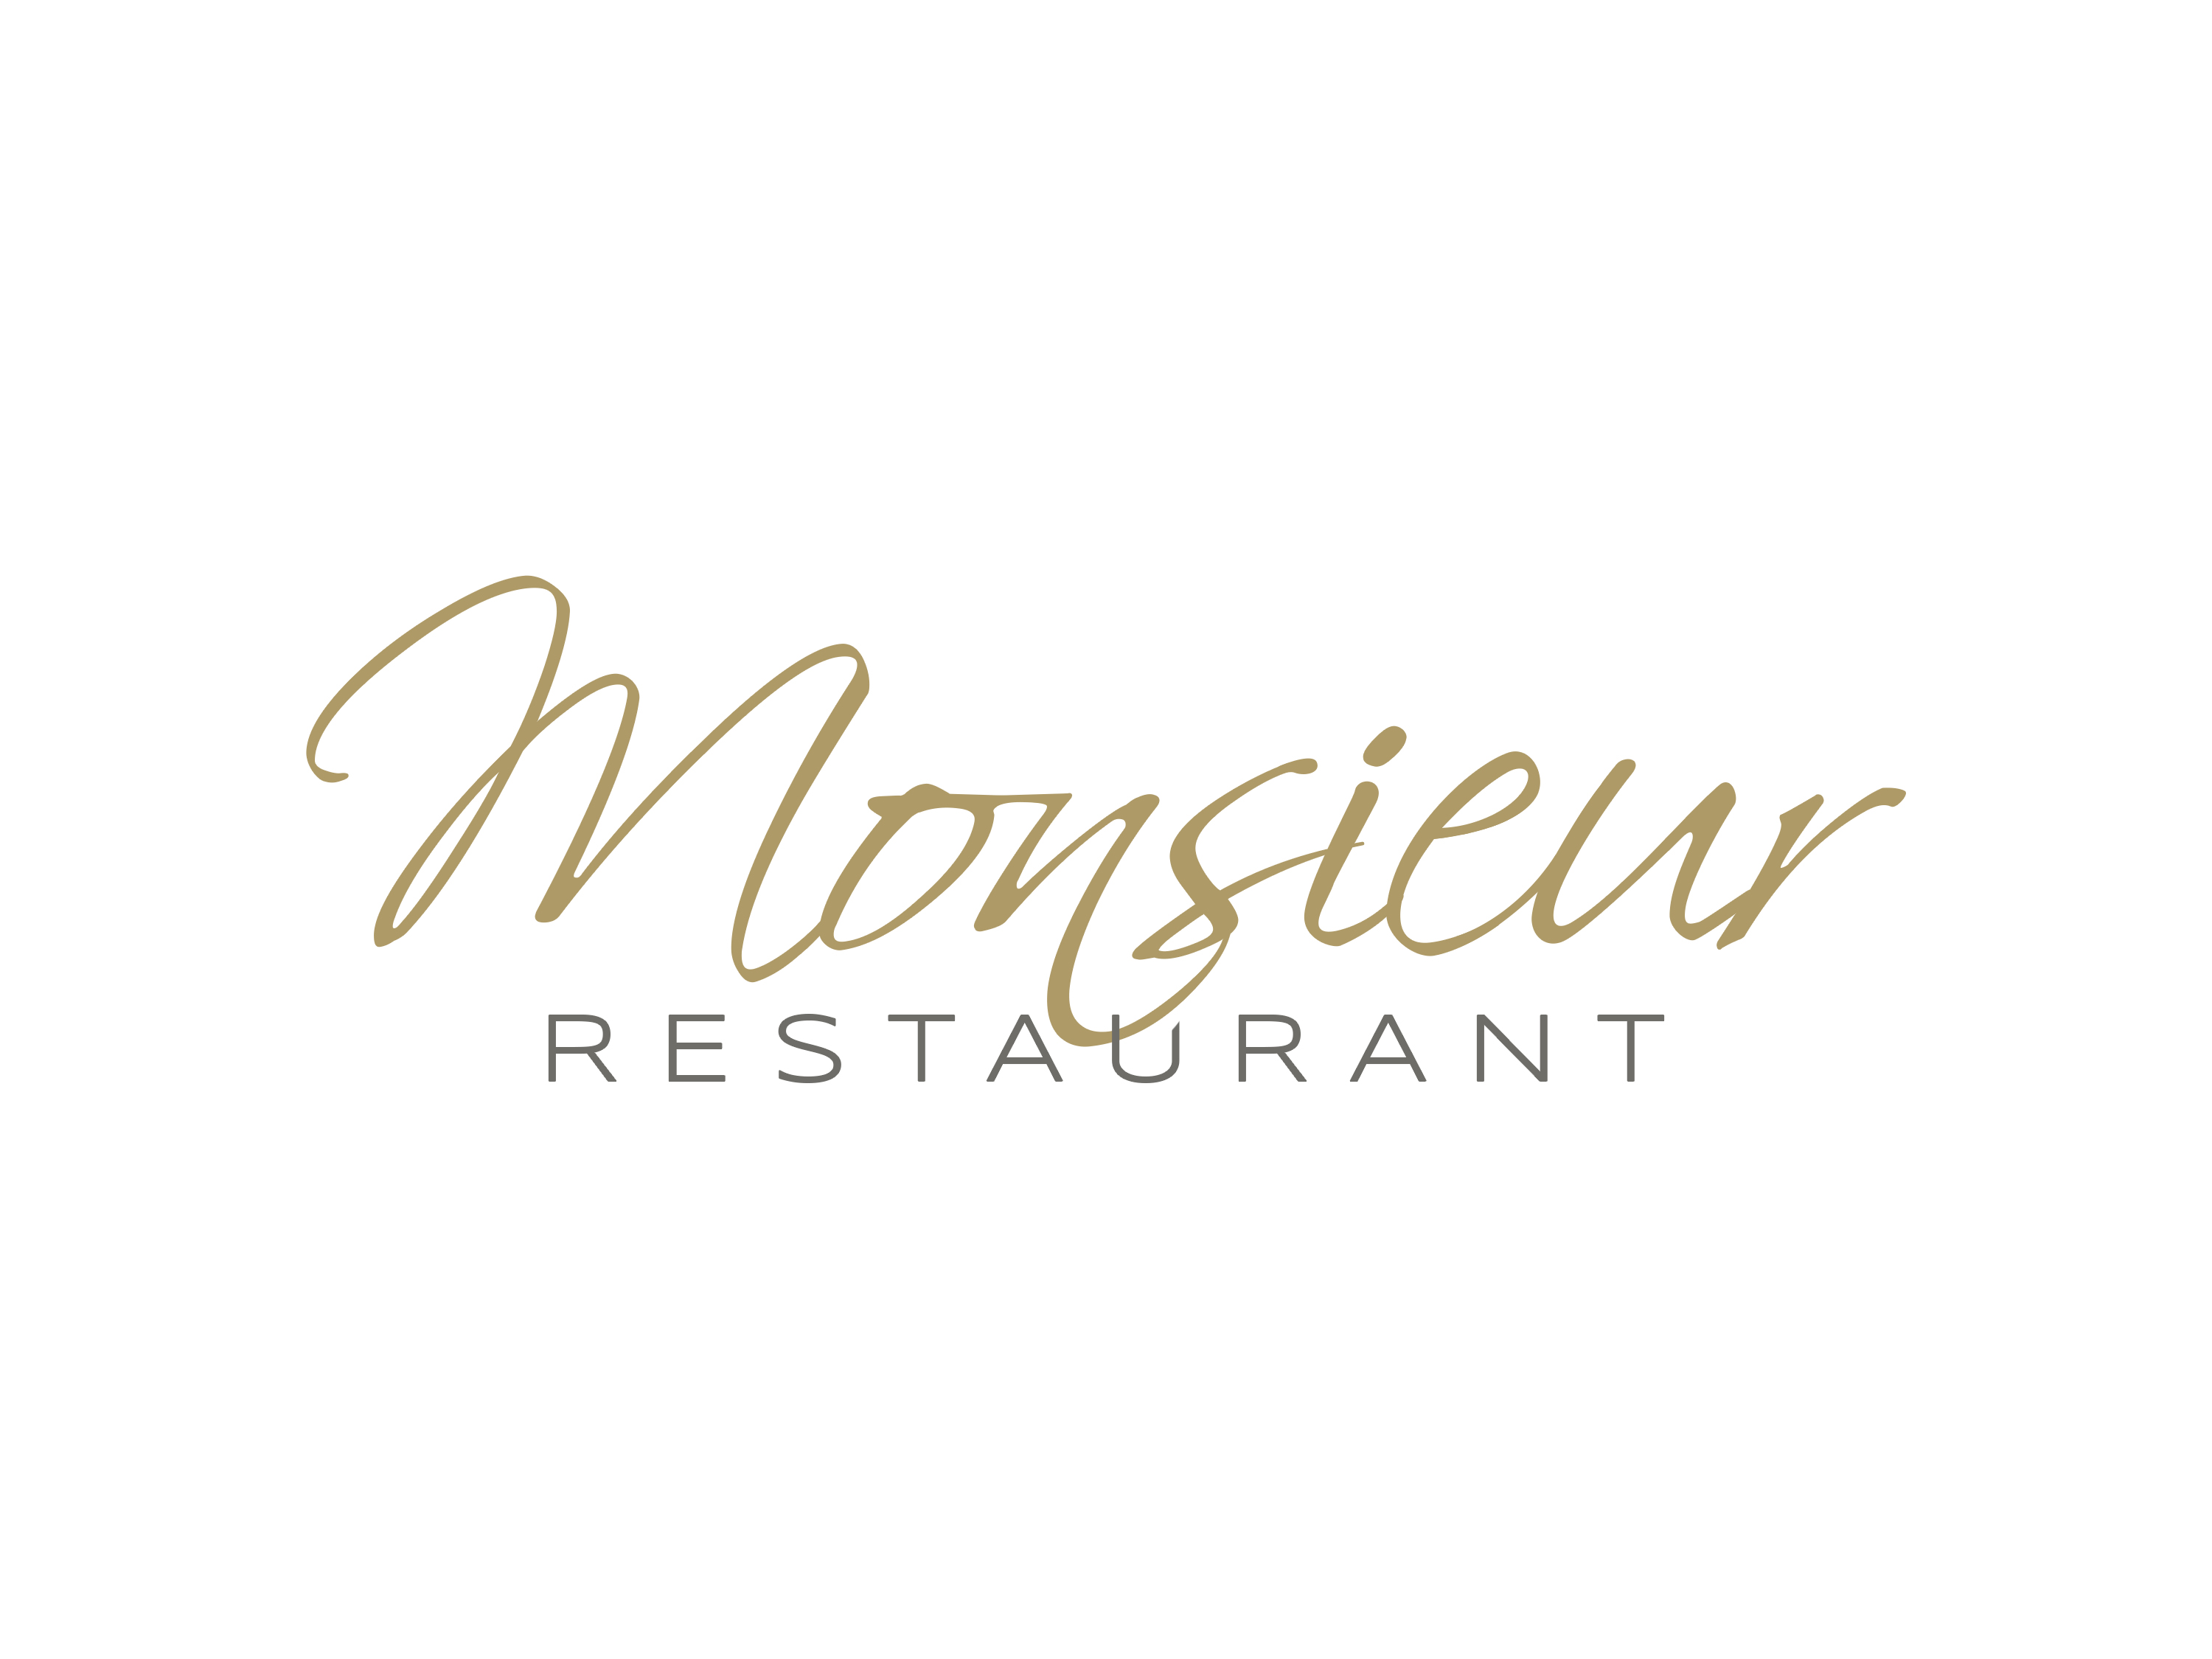 Monsieur Restaurant